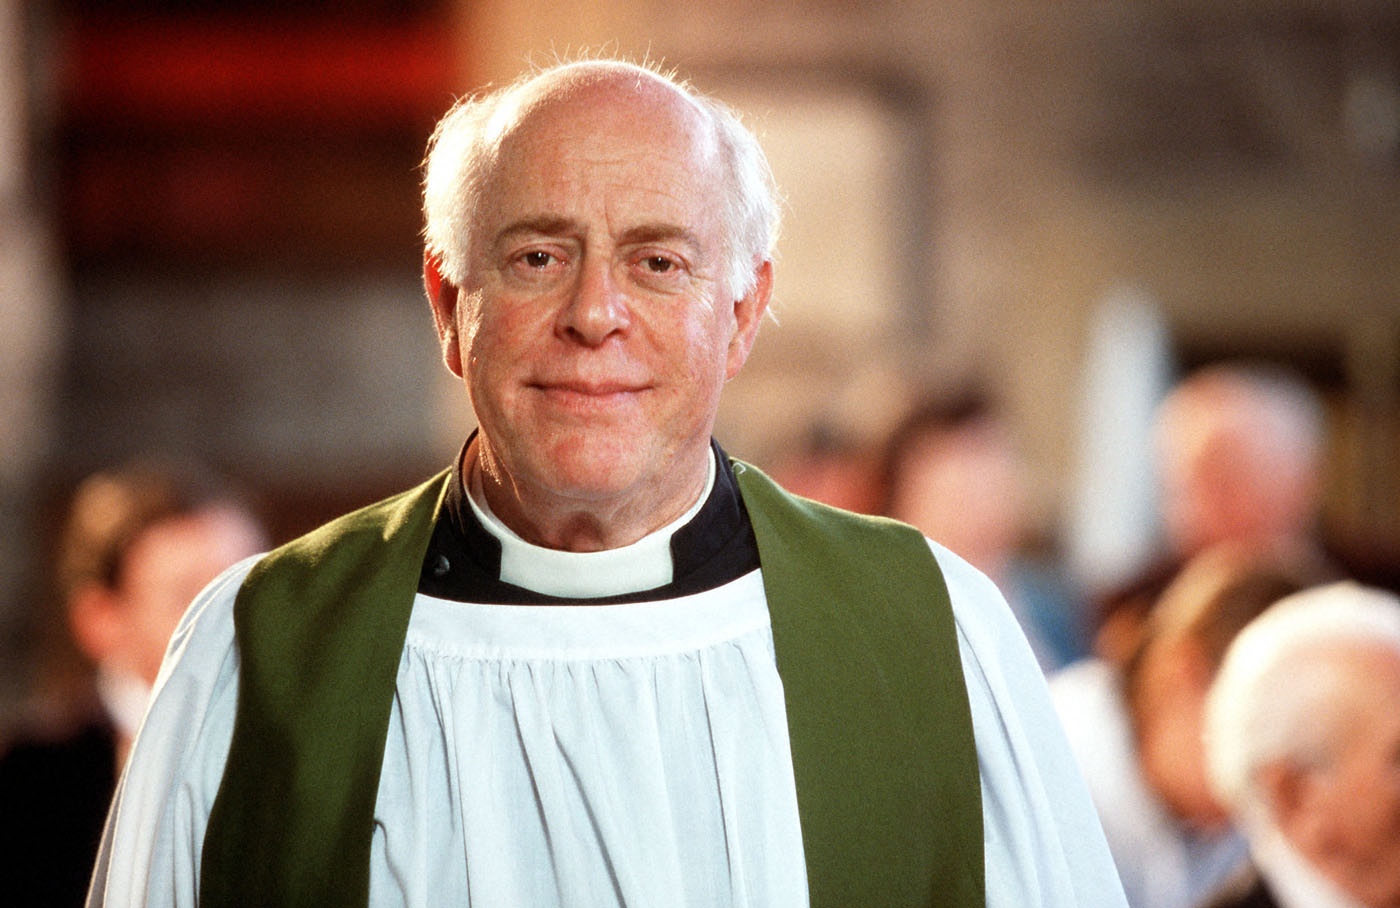 clive swift today